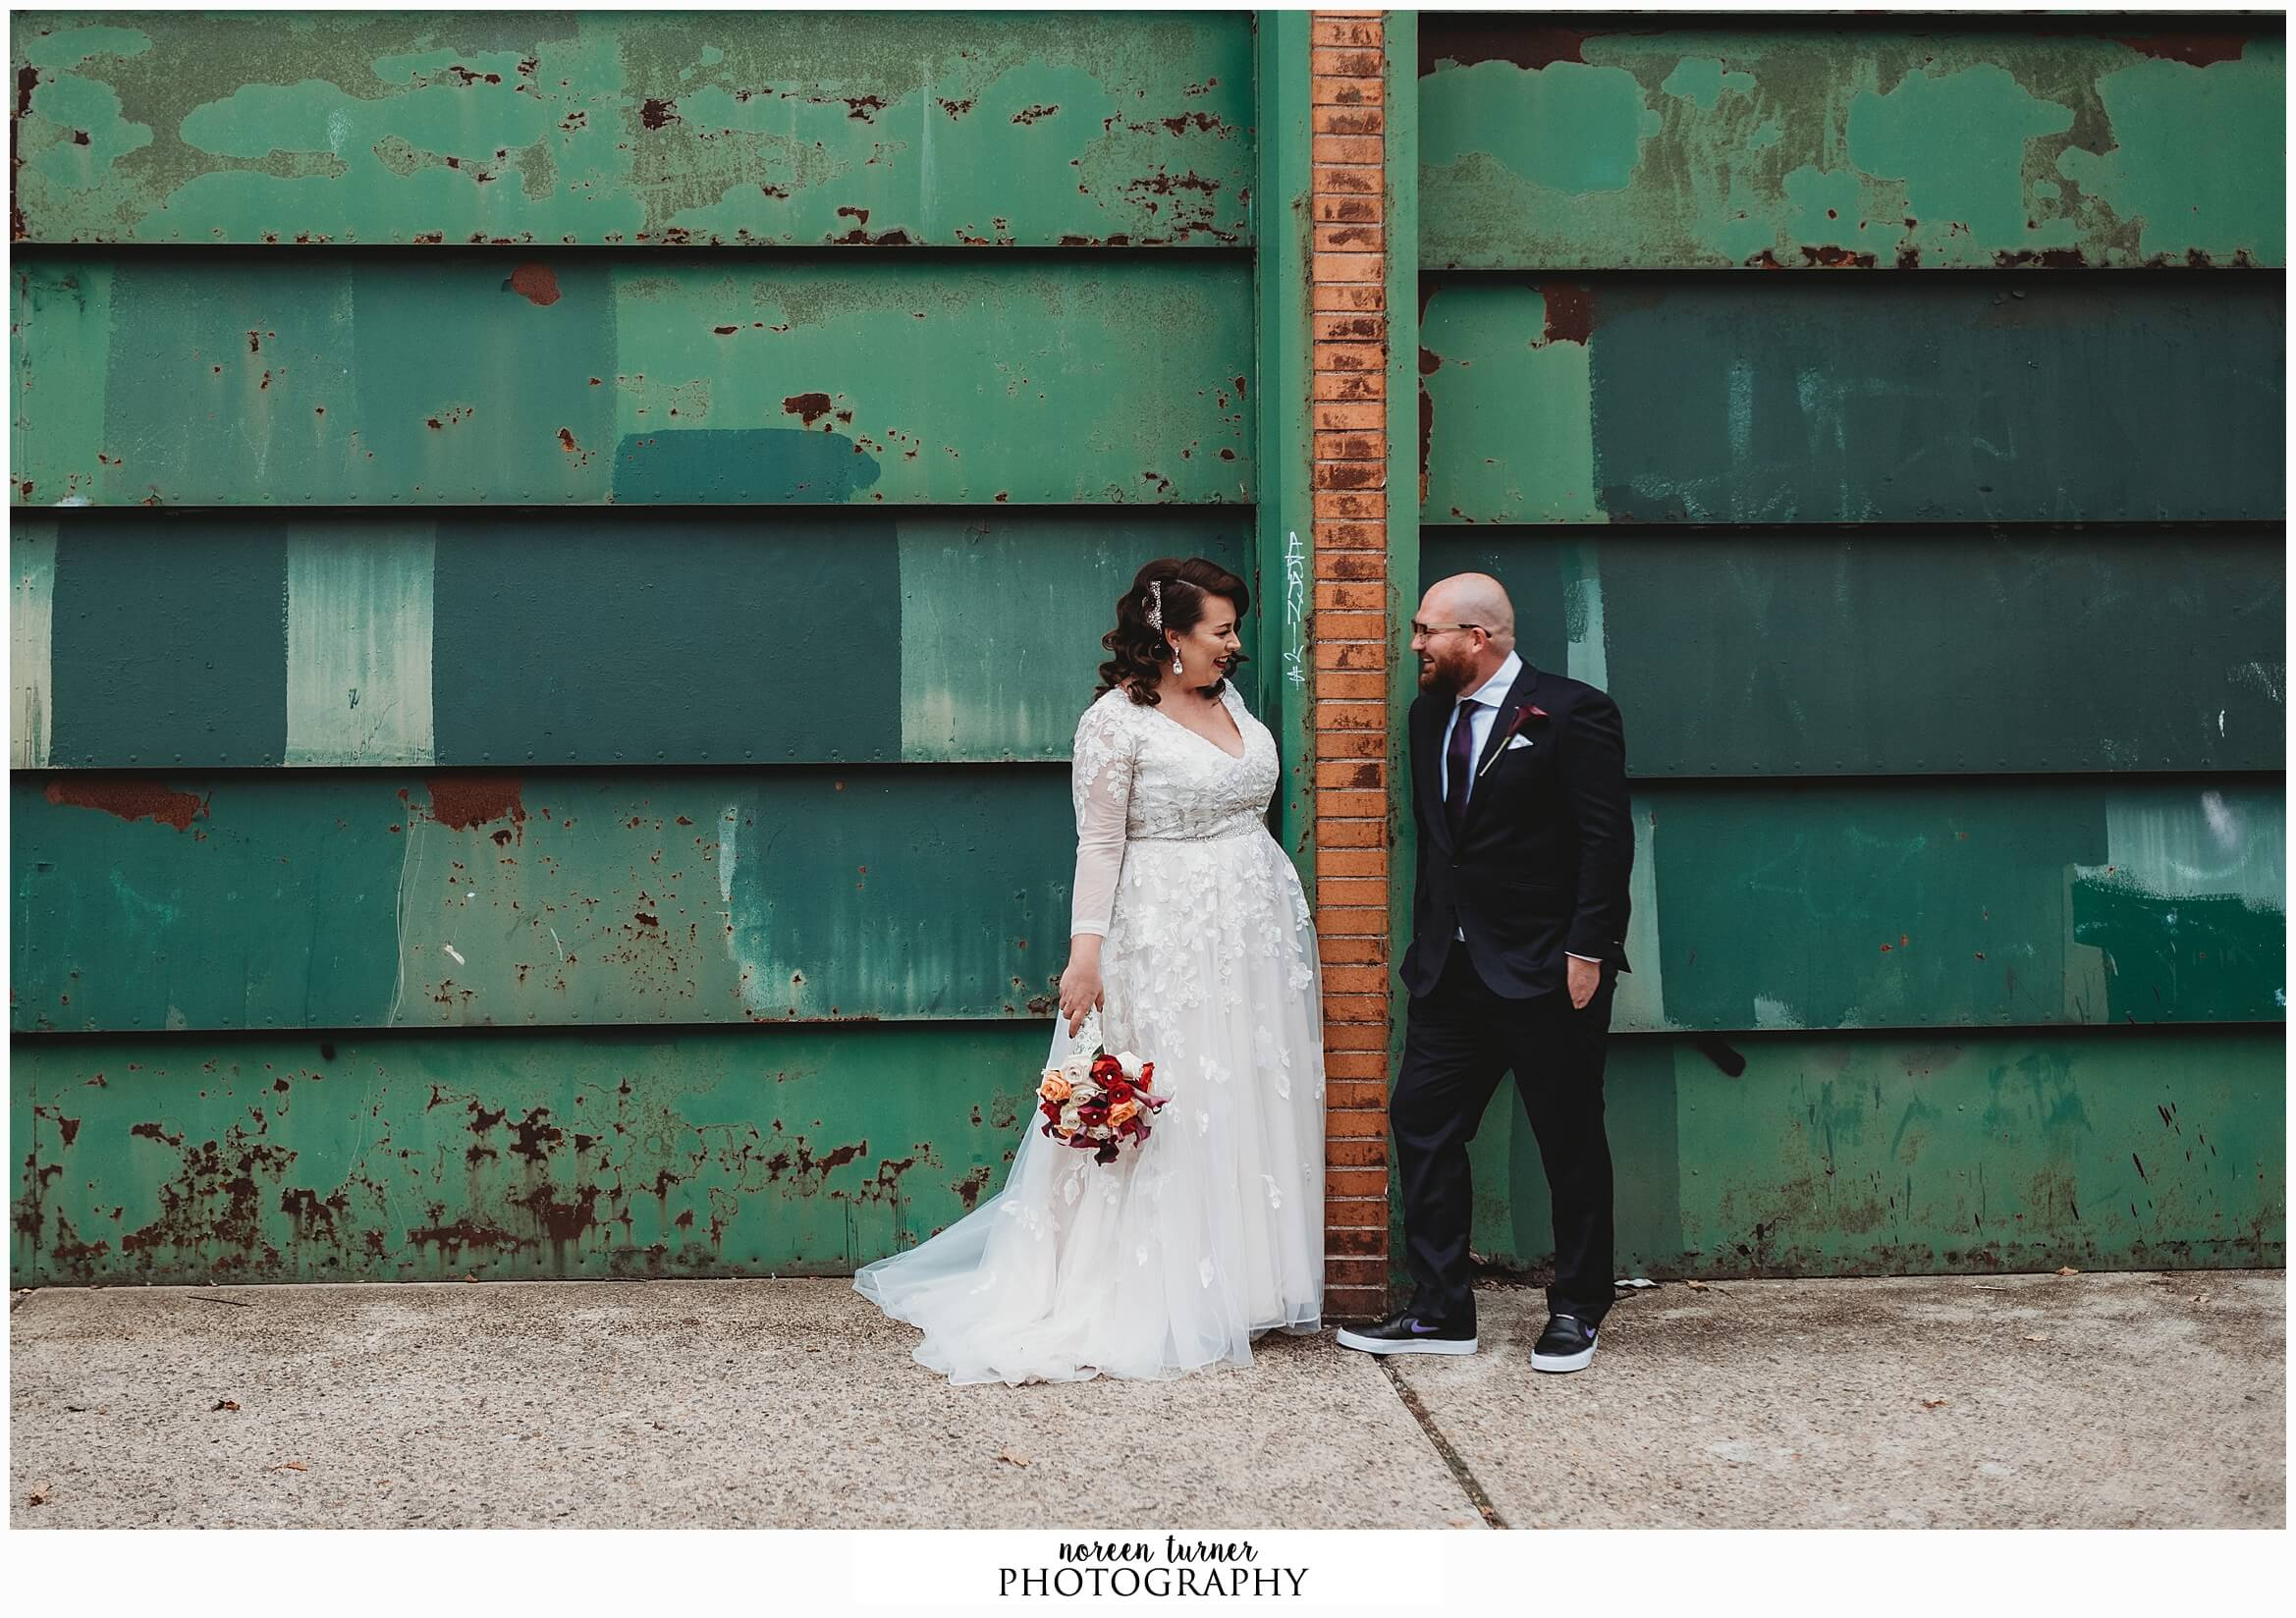 Felt Factory Wedding